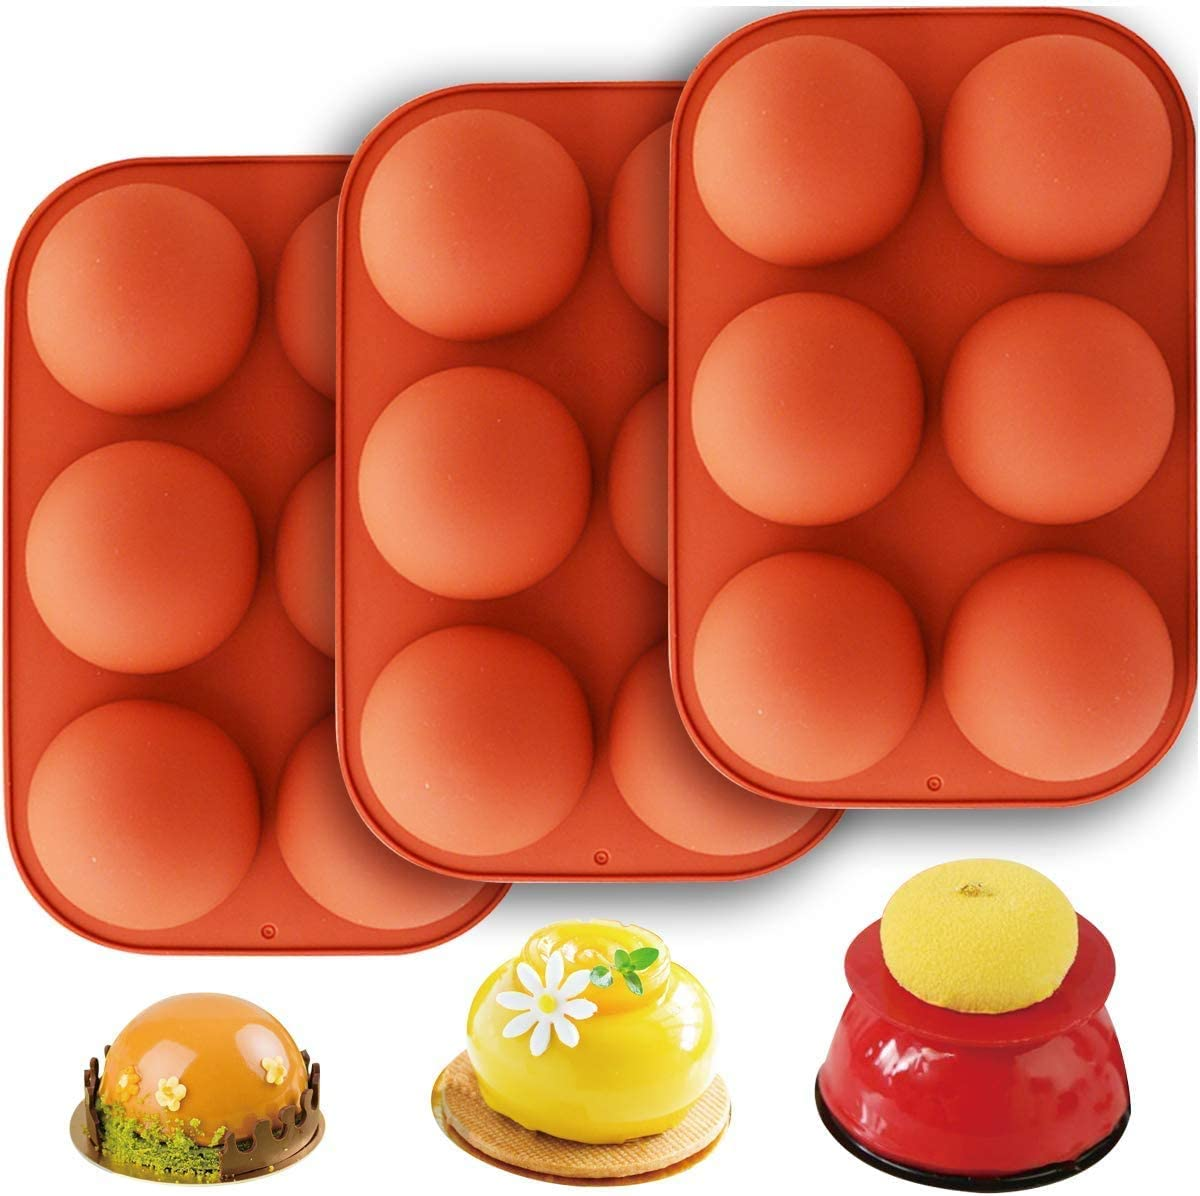 Beauteye 6-Cavity Semi Sphere Silicone Mold Baking Mold Half Ball Sphere Silicone Mold for Cake Decoration Jelly Pudding Candy Chocolate for Making Chocolate Dome Mousse Cake Jelly